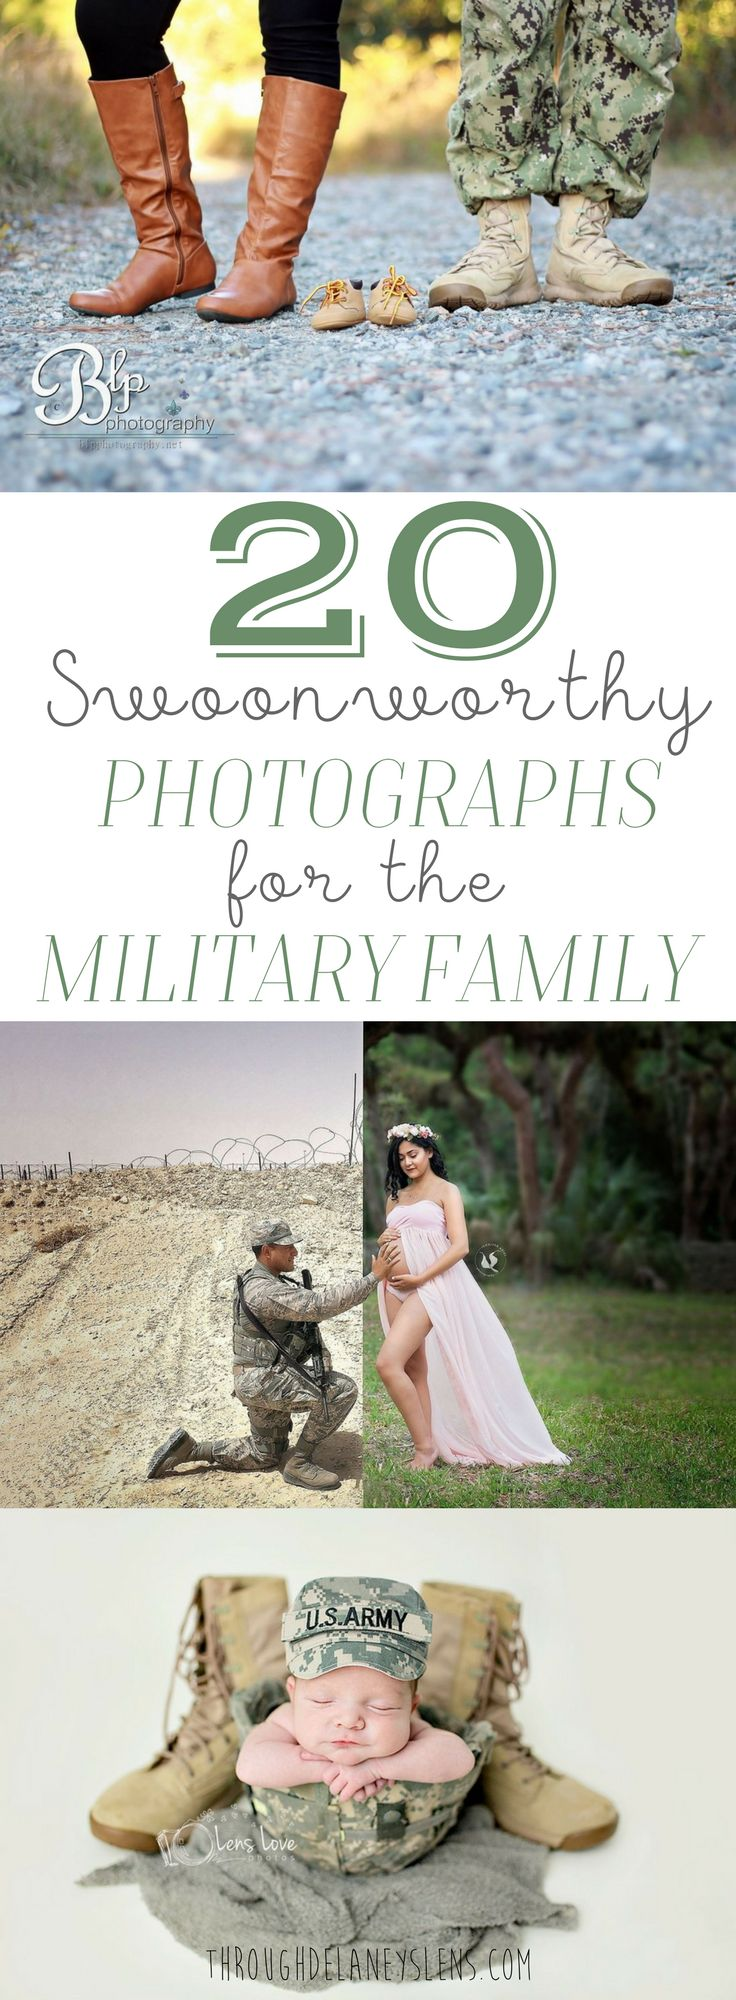 There is something extra special about military photographs, click here to see 2…